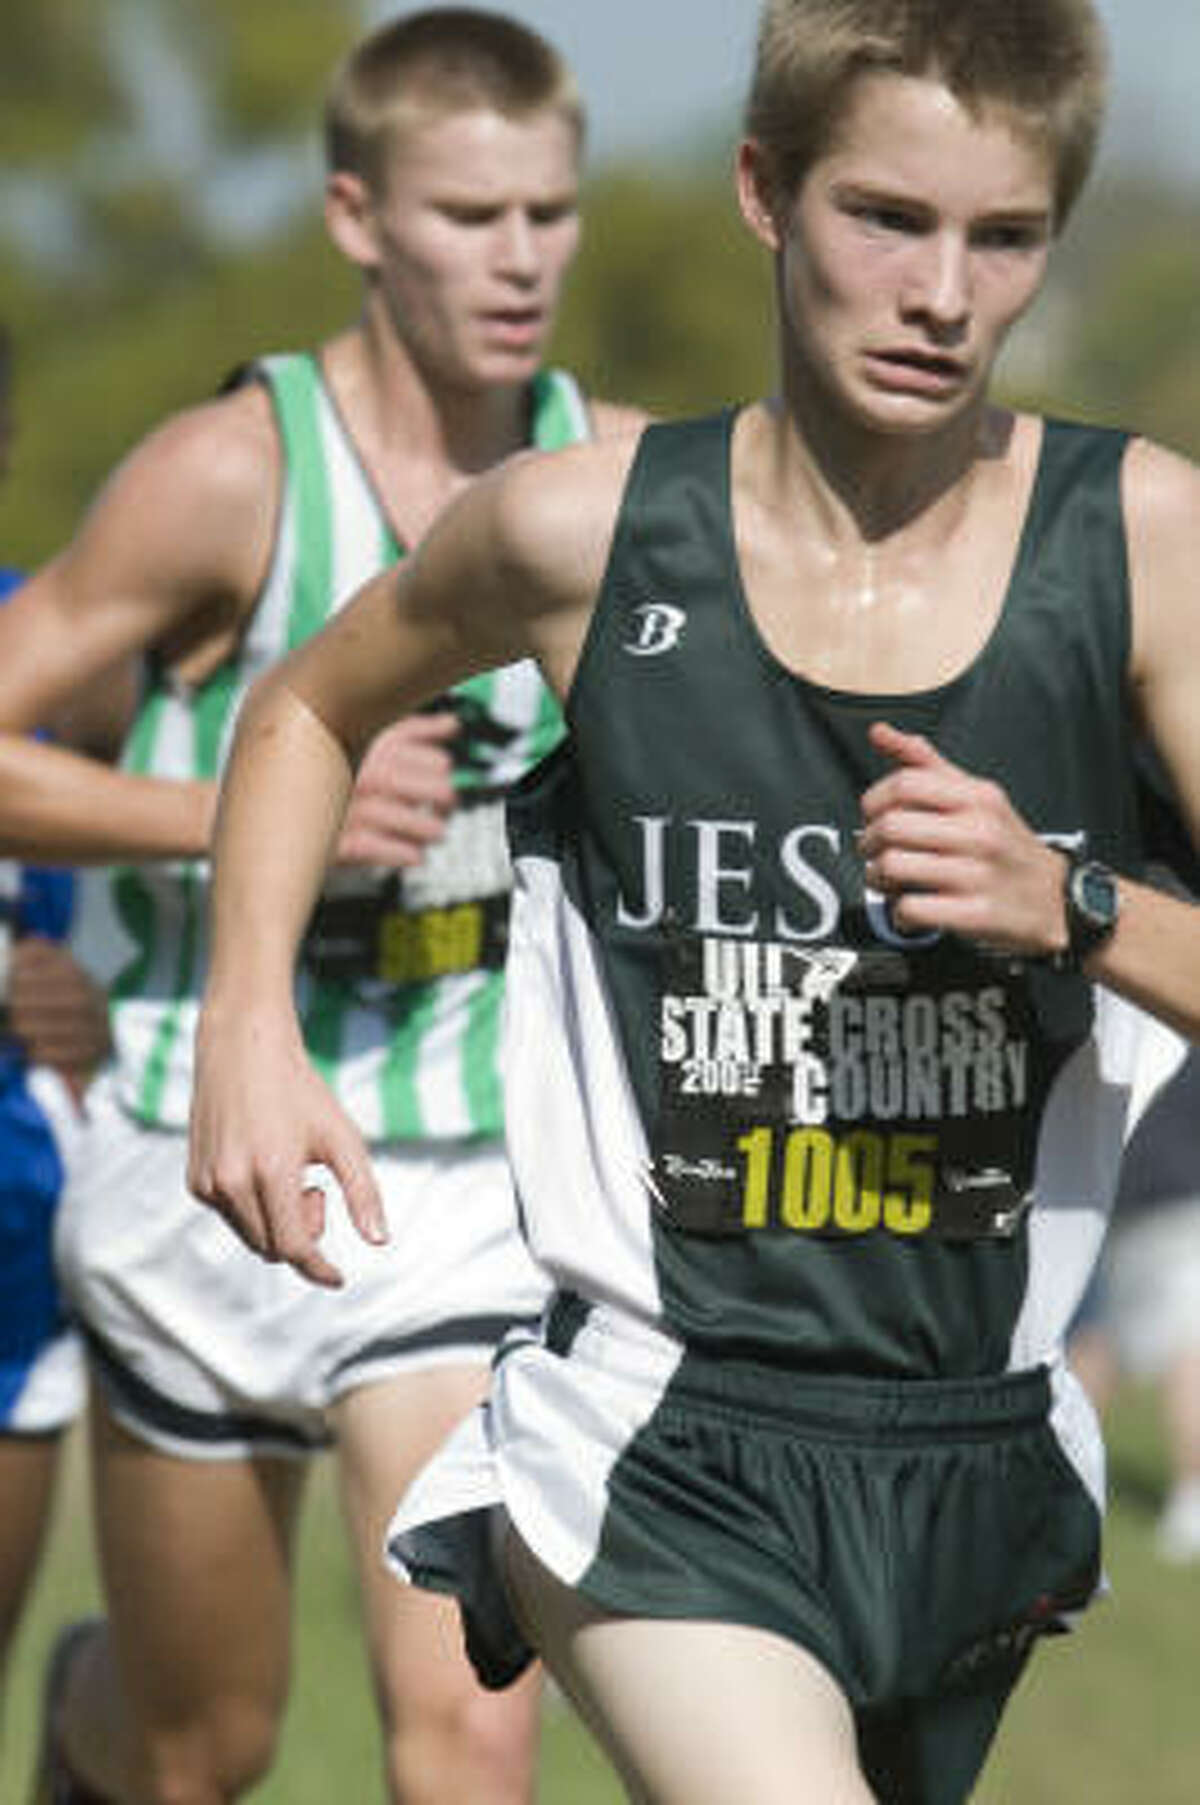 Strake Jesuit's Weston Novelli, front right, is shown during the 5A race. Behind him is Austin Geerts of Cedar Park.